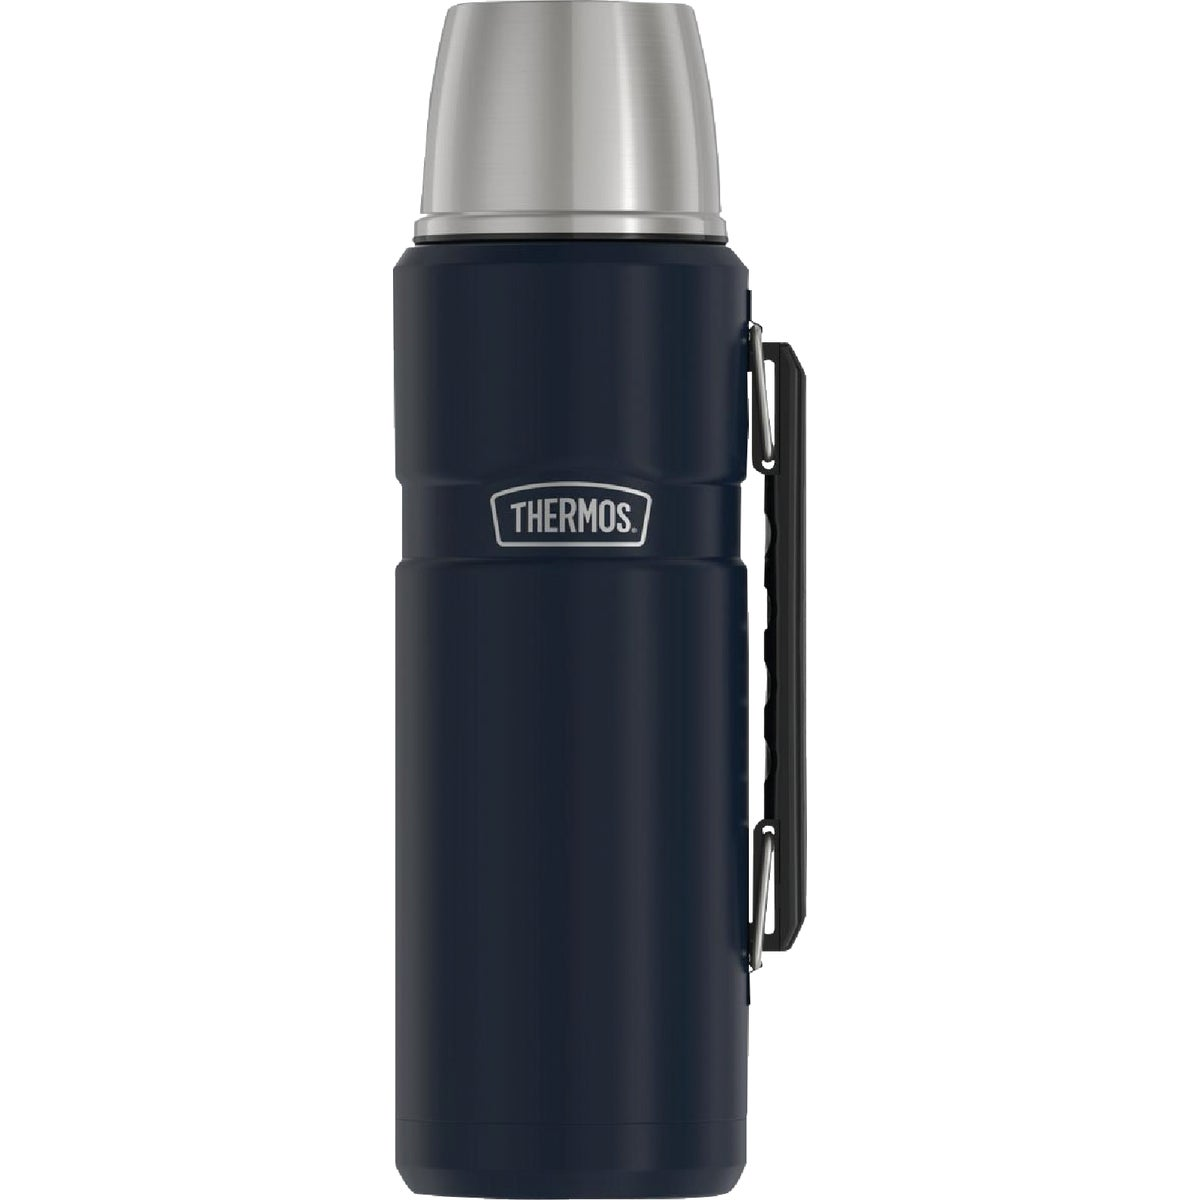 40OZ SS VACUUM BOTTLE - SK2010MBTRI4 by Thermos Co